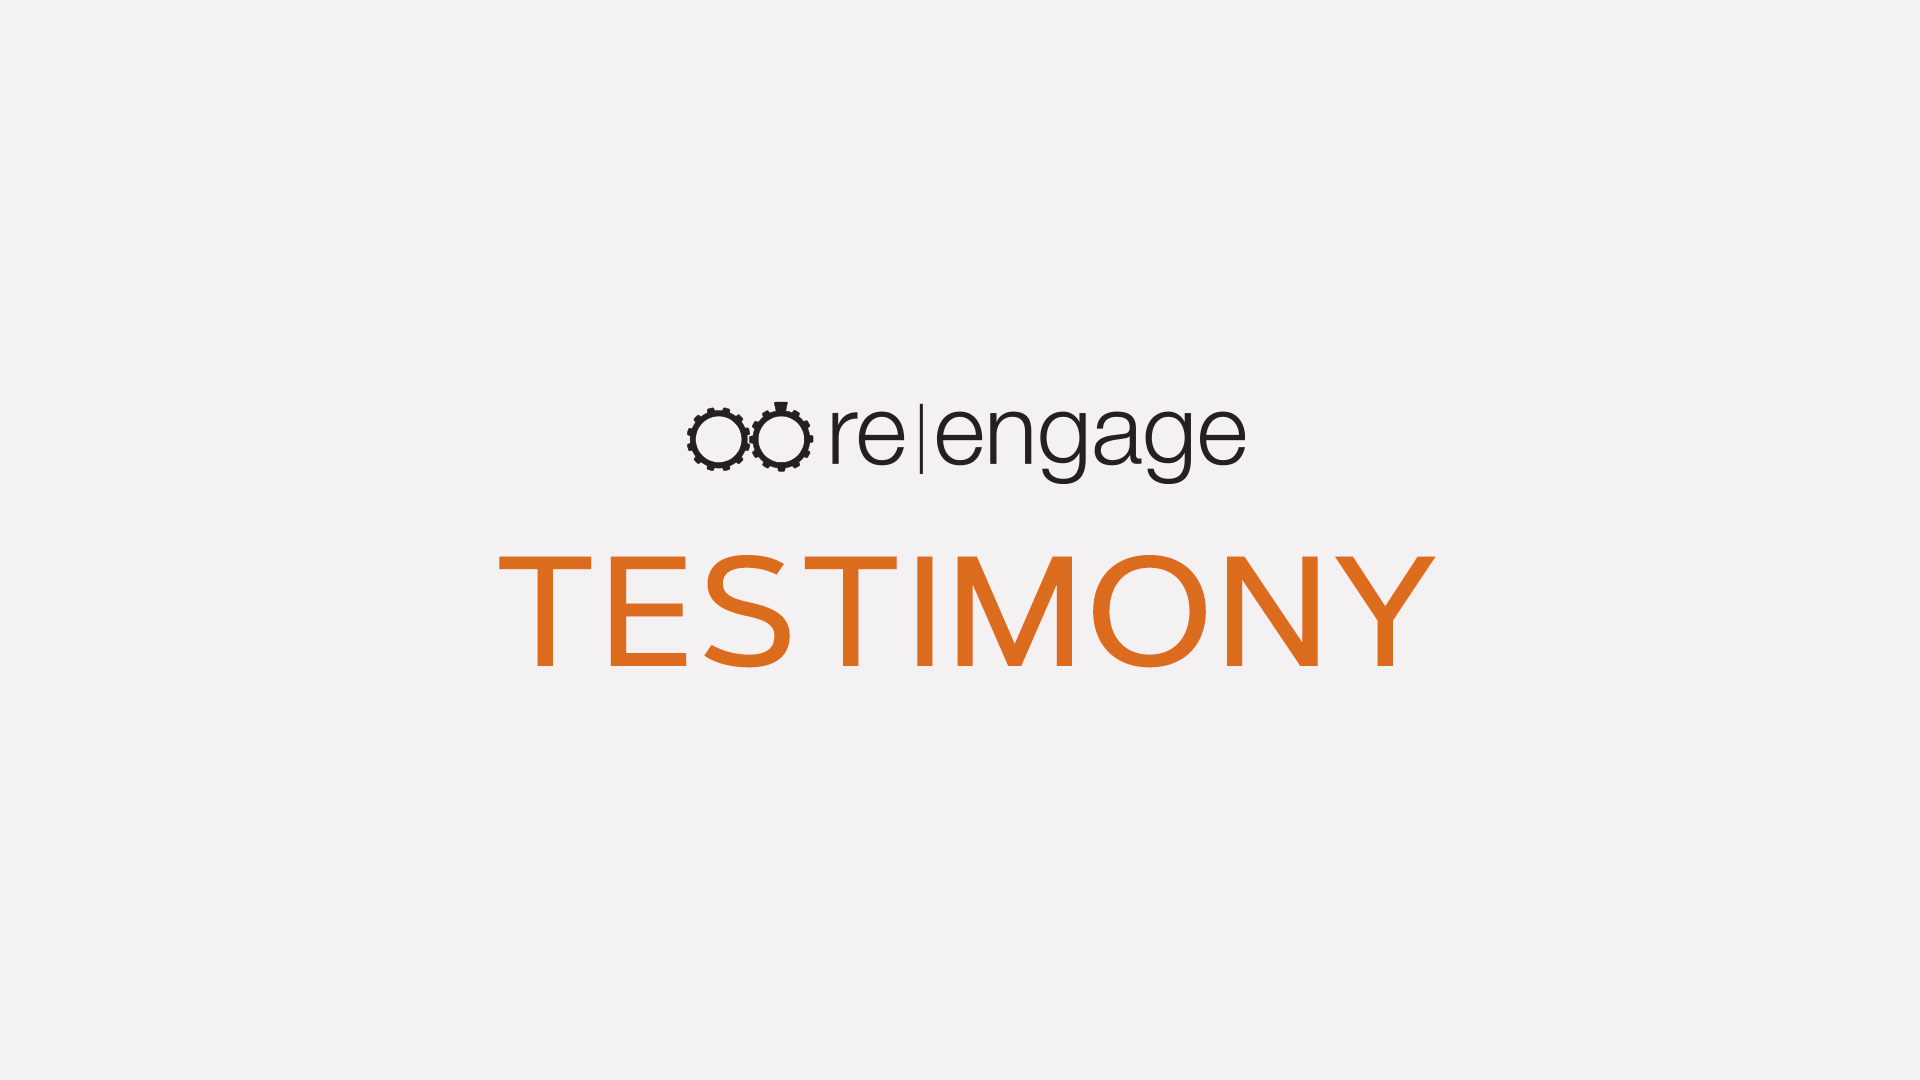 Testimony- John and Pam McGee